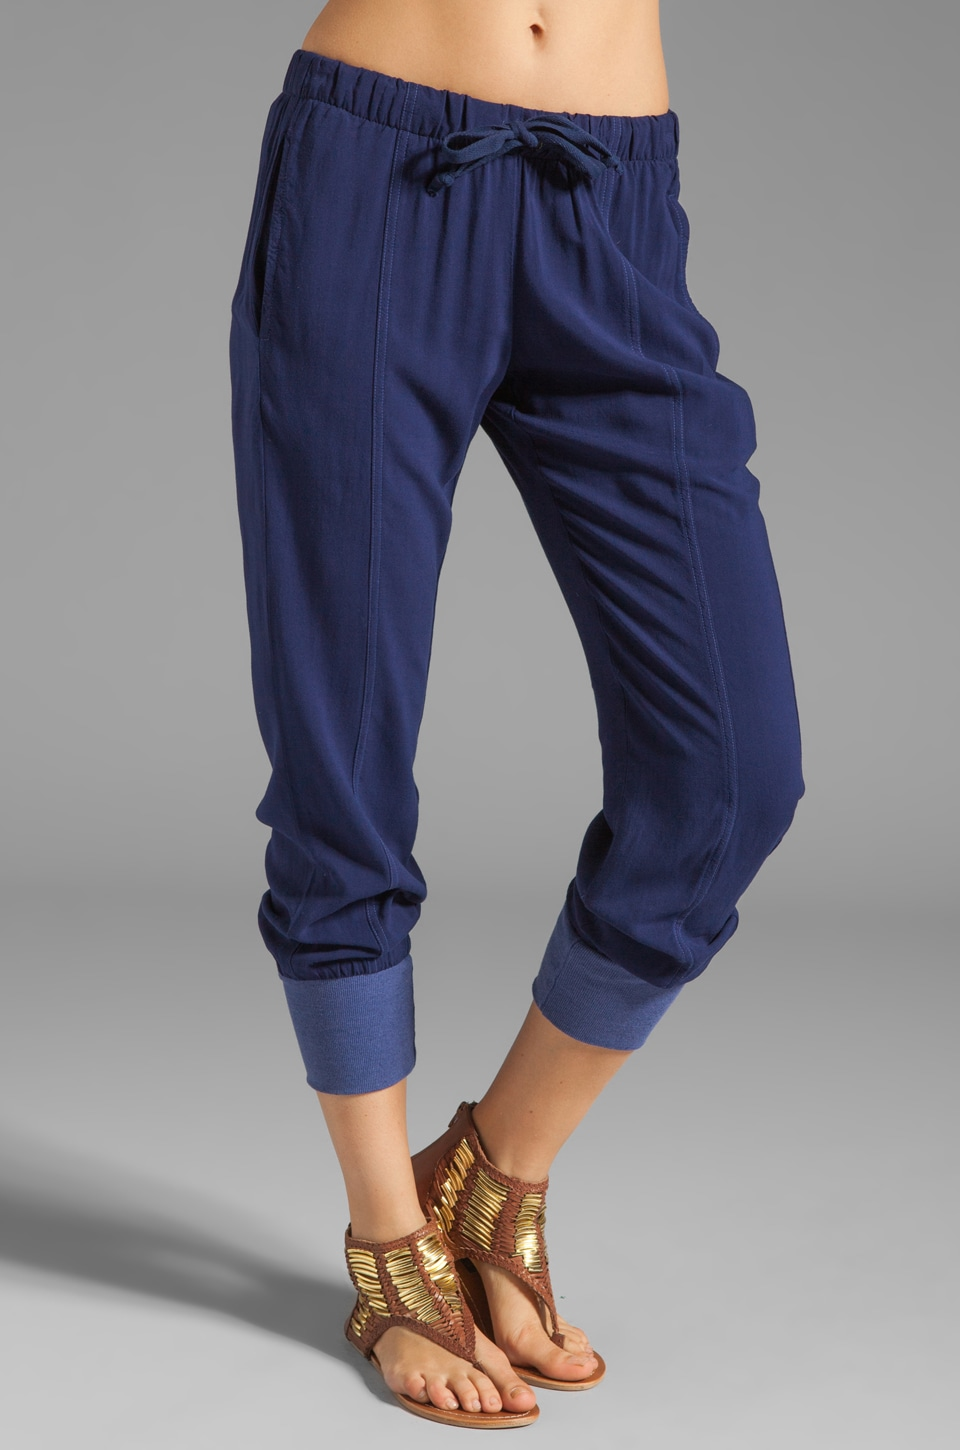 Rebel Yell Tomboy Trouser Sweats in Blue Jean